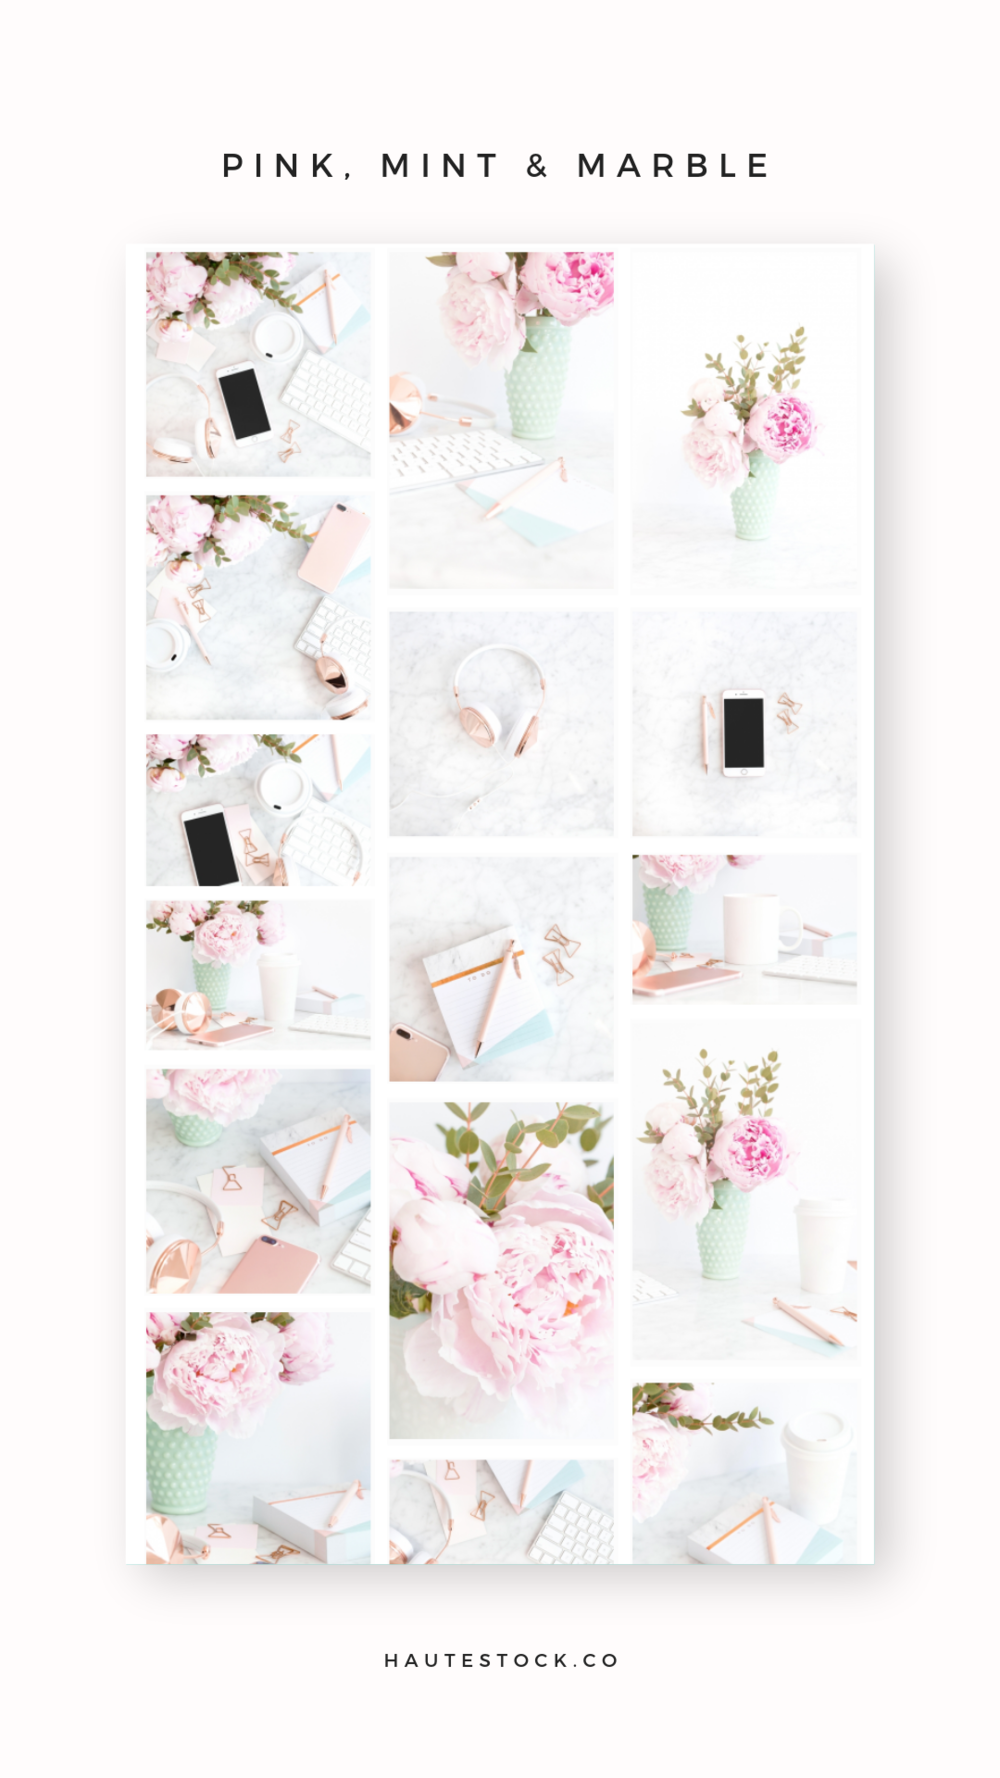 Haute Stock's Pink, Mint and Marble styled stock photo collection is perfect for brands that need feminine styled images that are beautiful and high-quality.